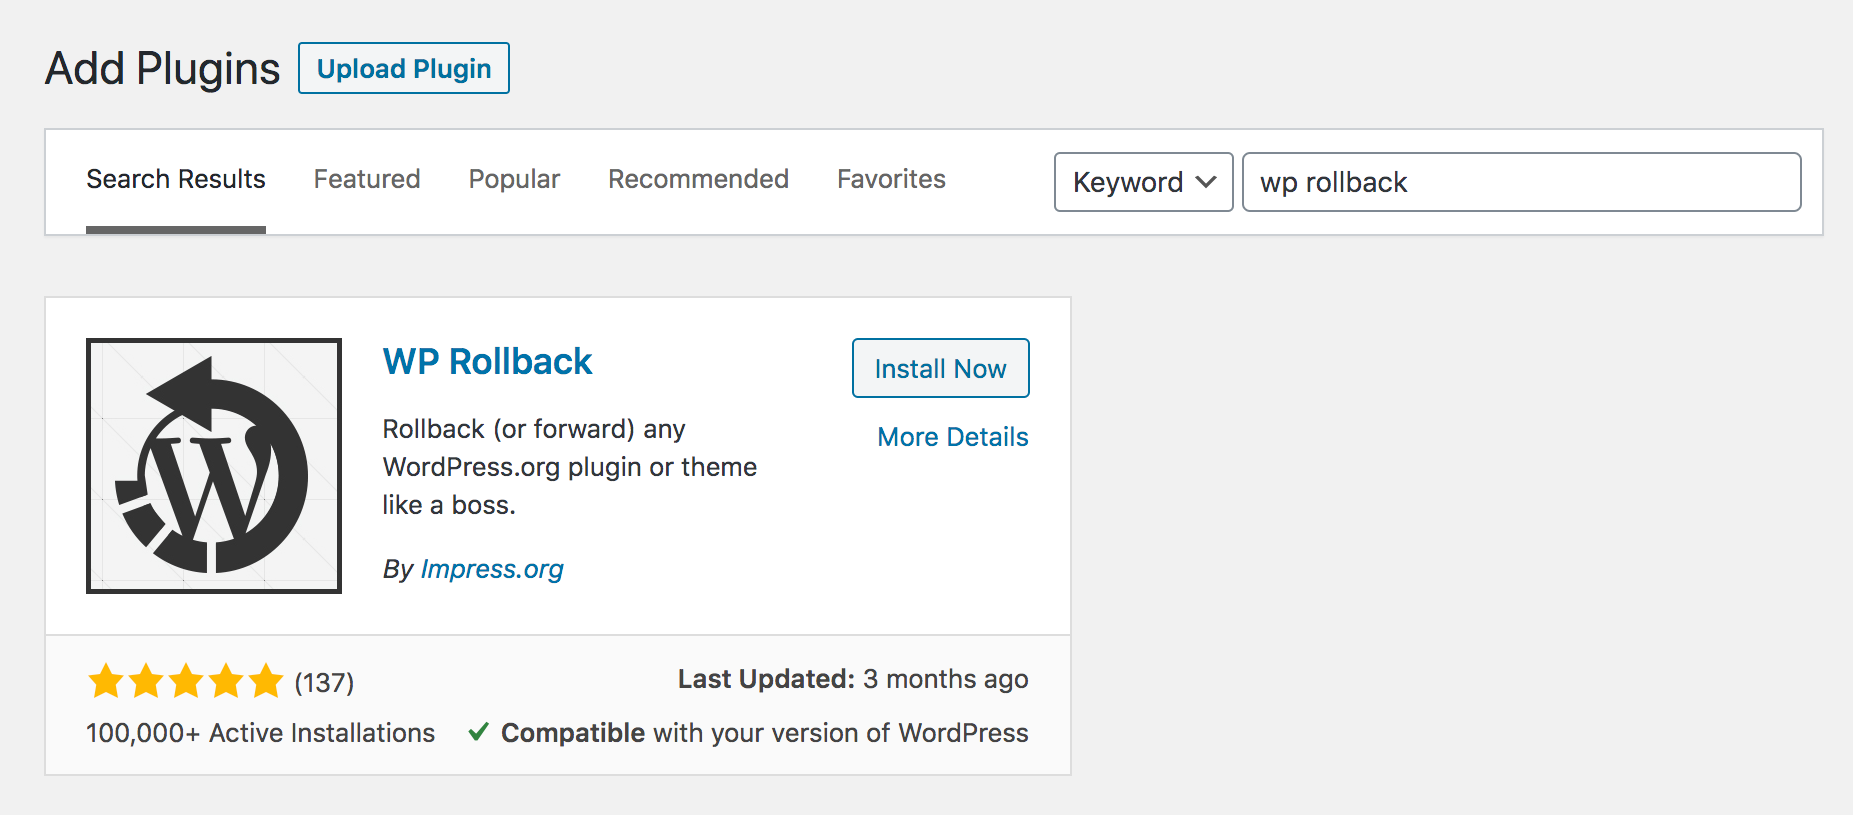 WordPress admin plugins page, searching for WP Rollback plugin.